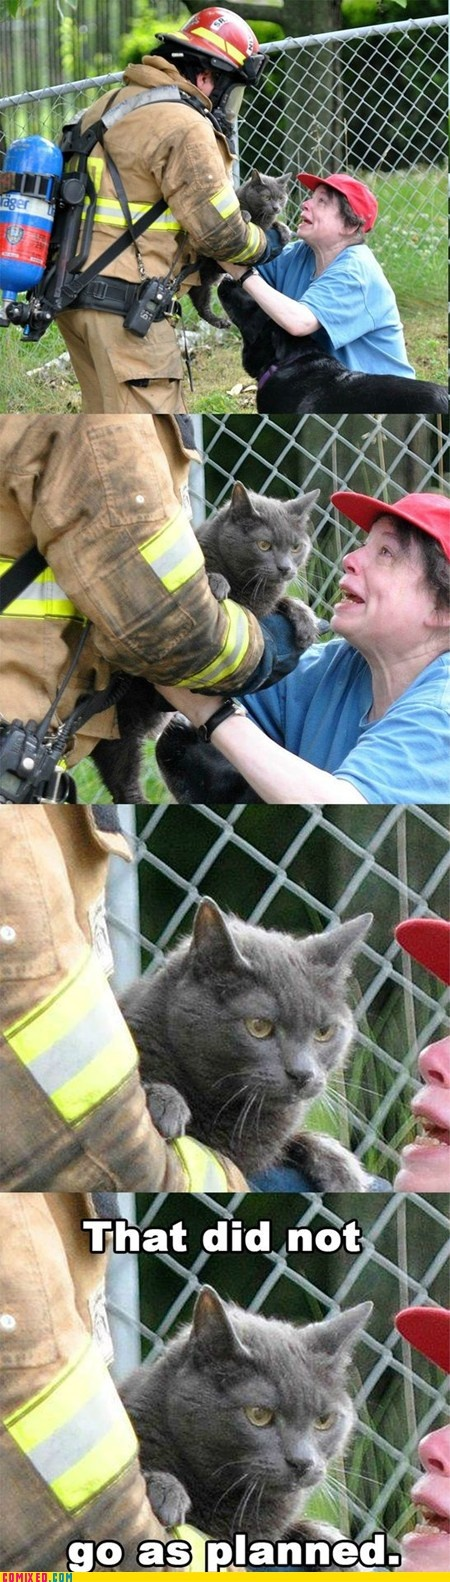 Sometimes not every plan...Plans Fail, Evil Cat, Laugh, Funny Pics, Funny Pictures, Funny Stuff, Funny Photos, Funny Memes, Animal